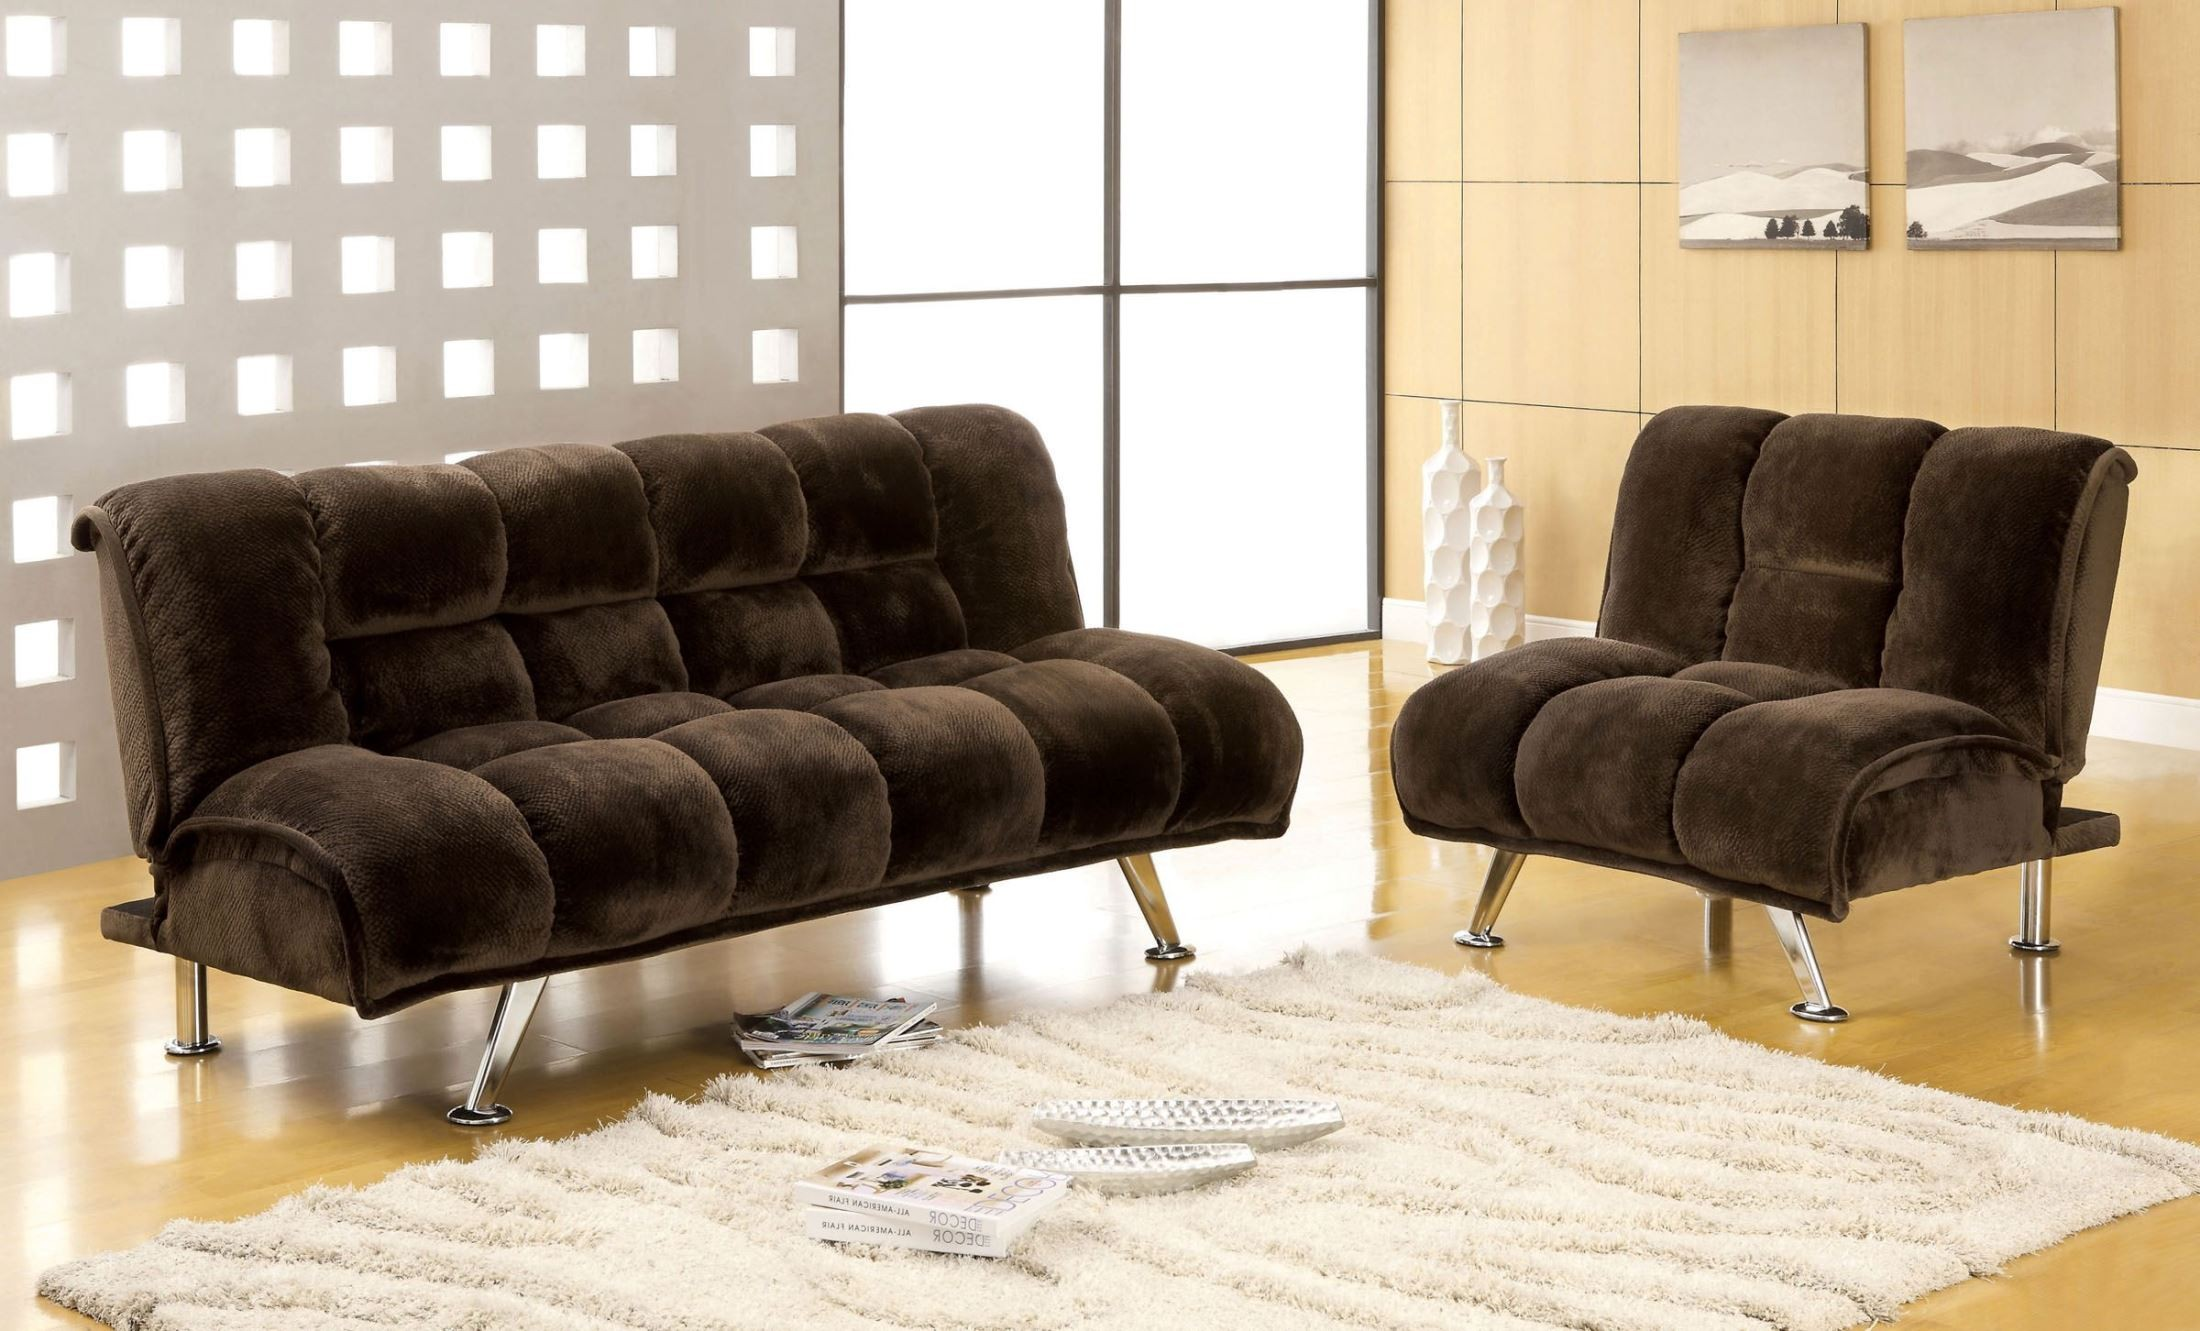 Marbelle dark brown champion fabric living room set from for Dark brown living room set